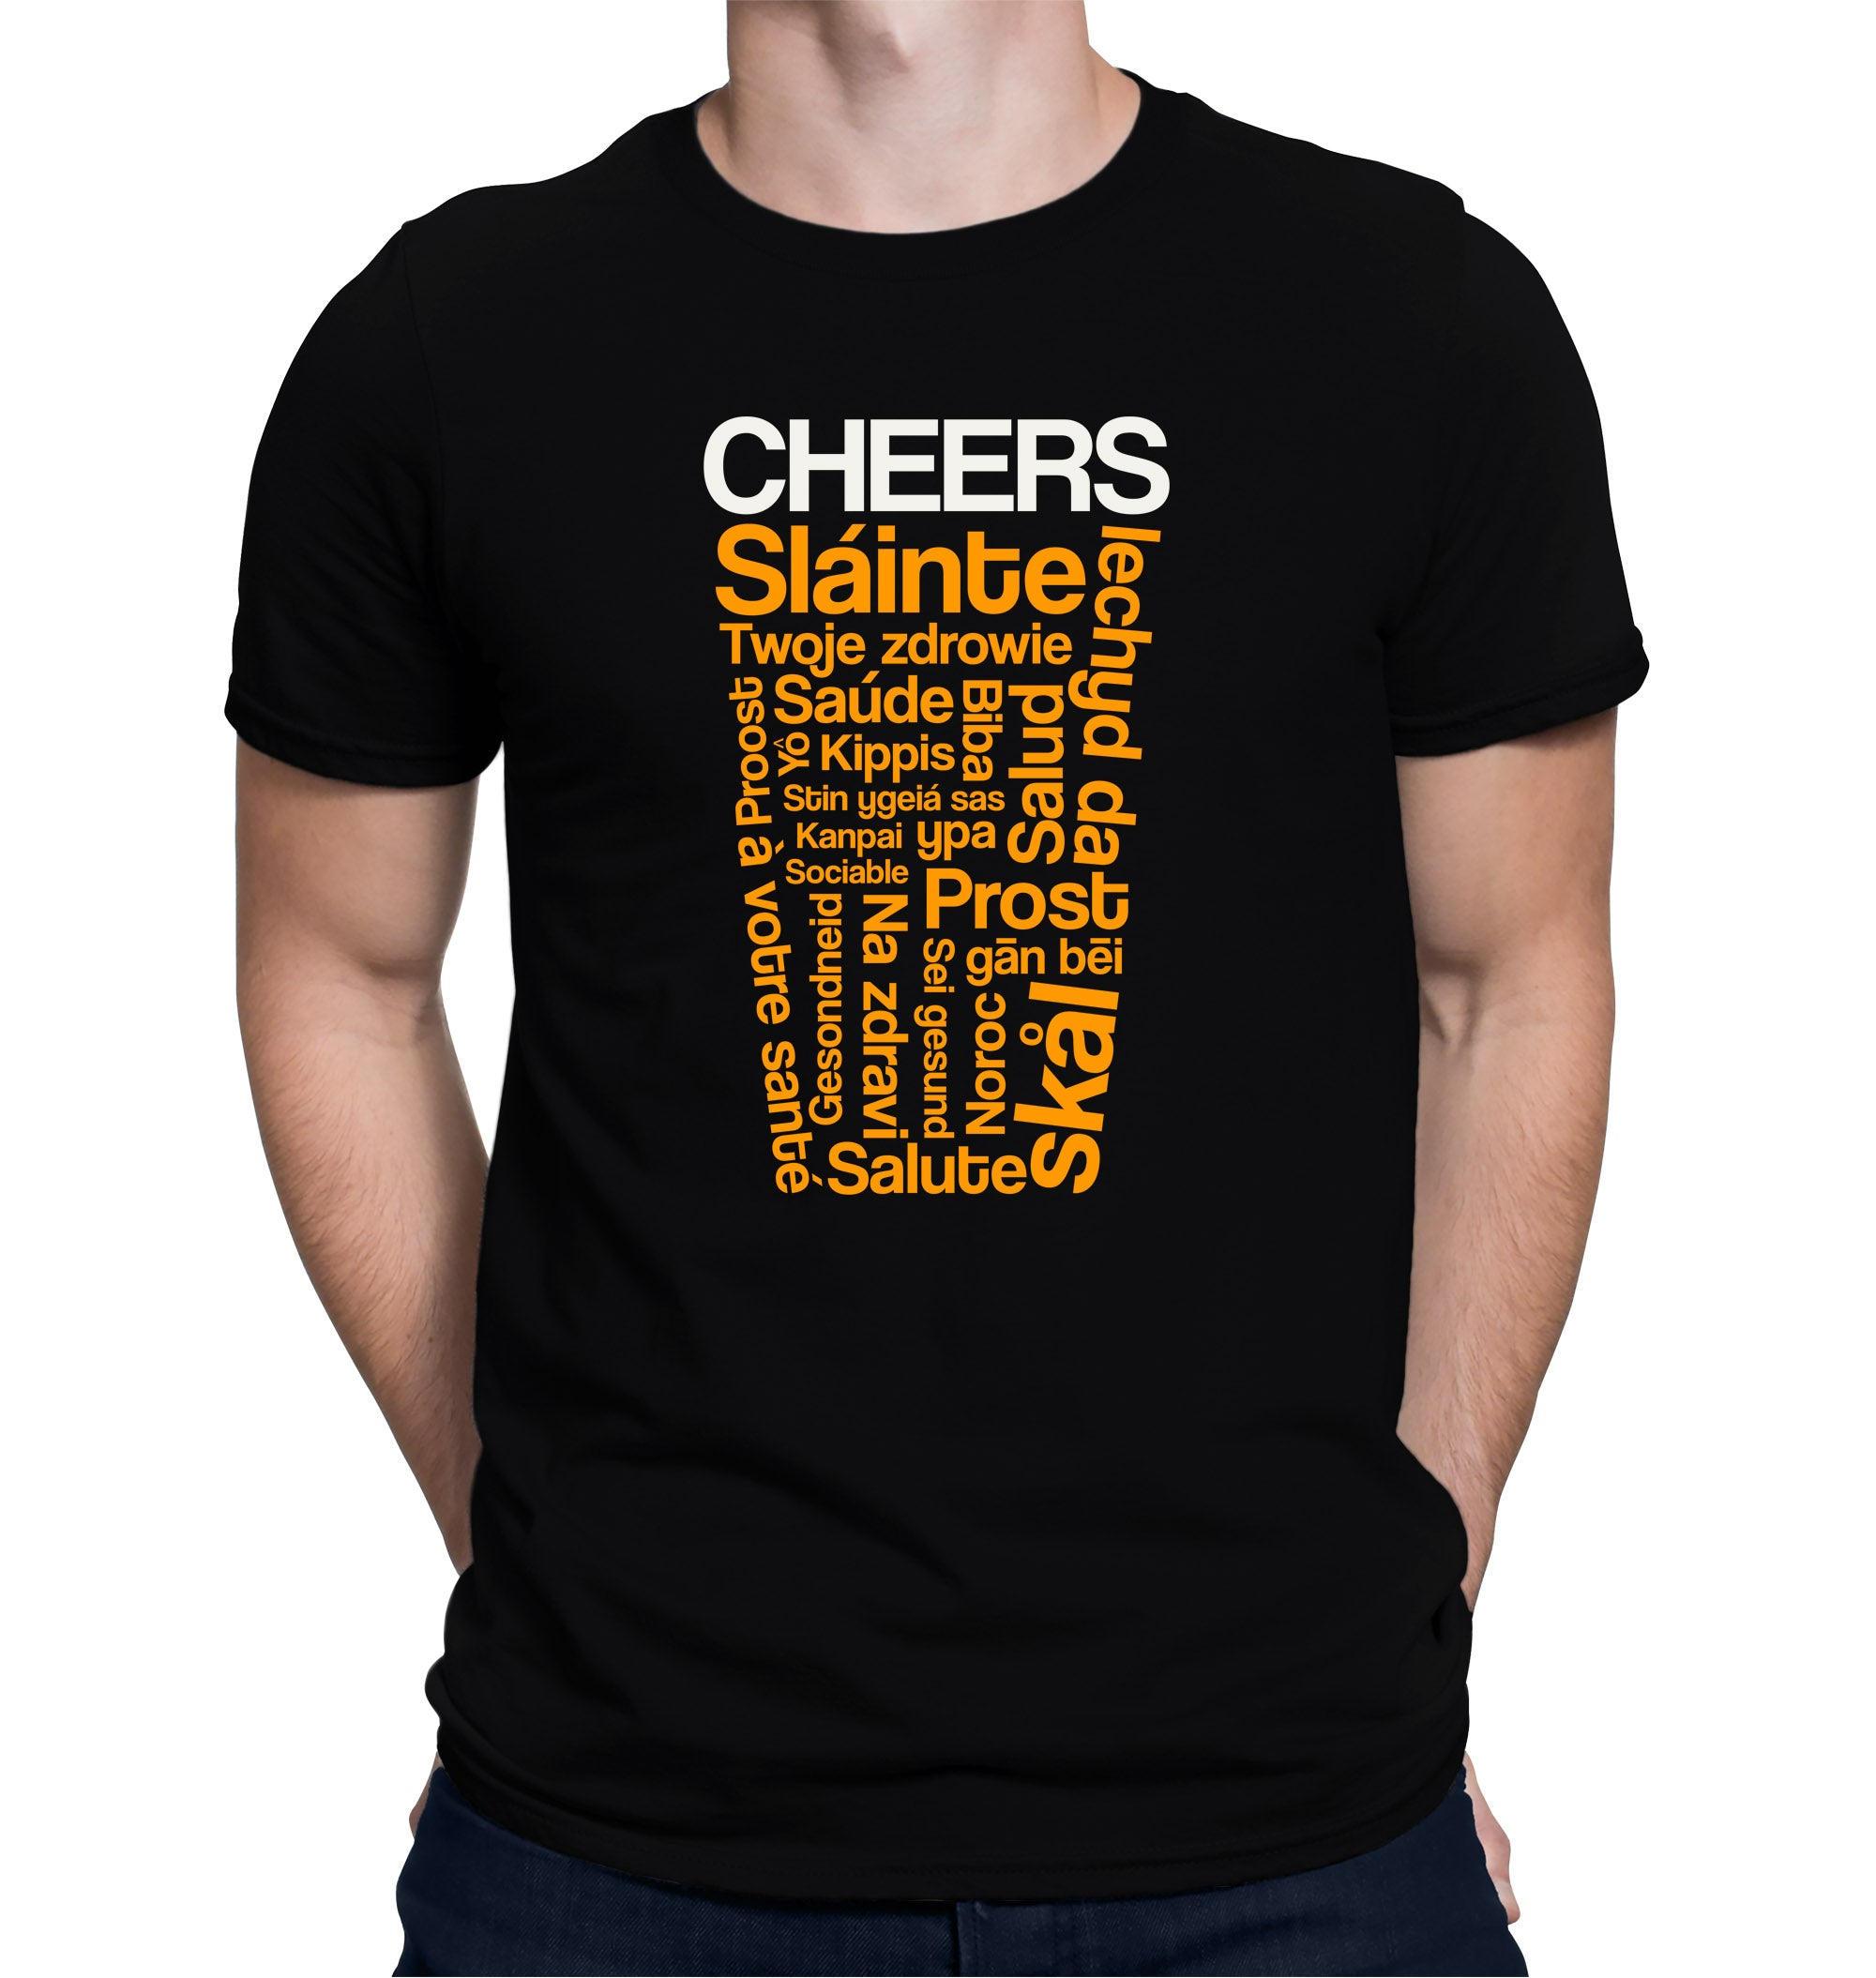 Cheers from Around the World T-Shirt